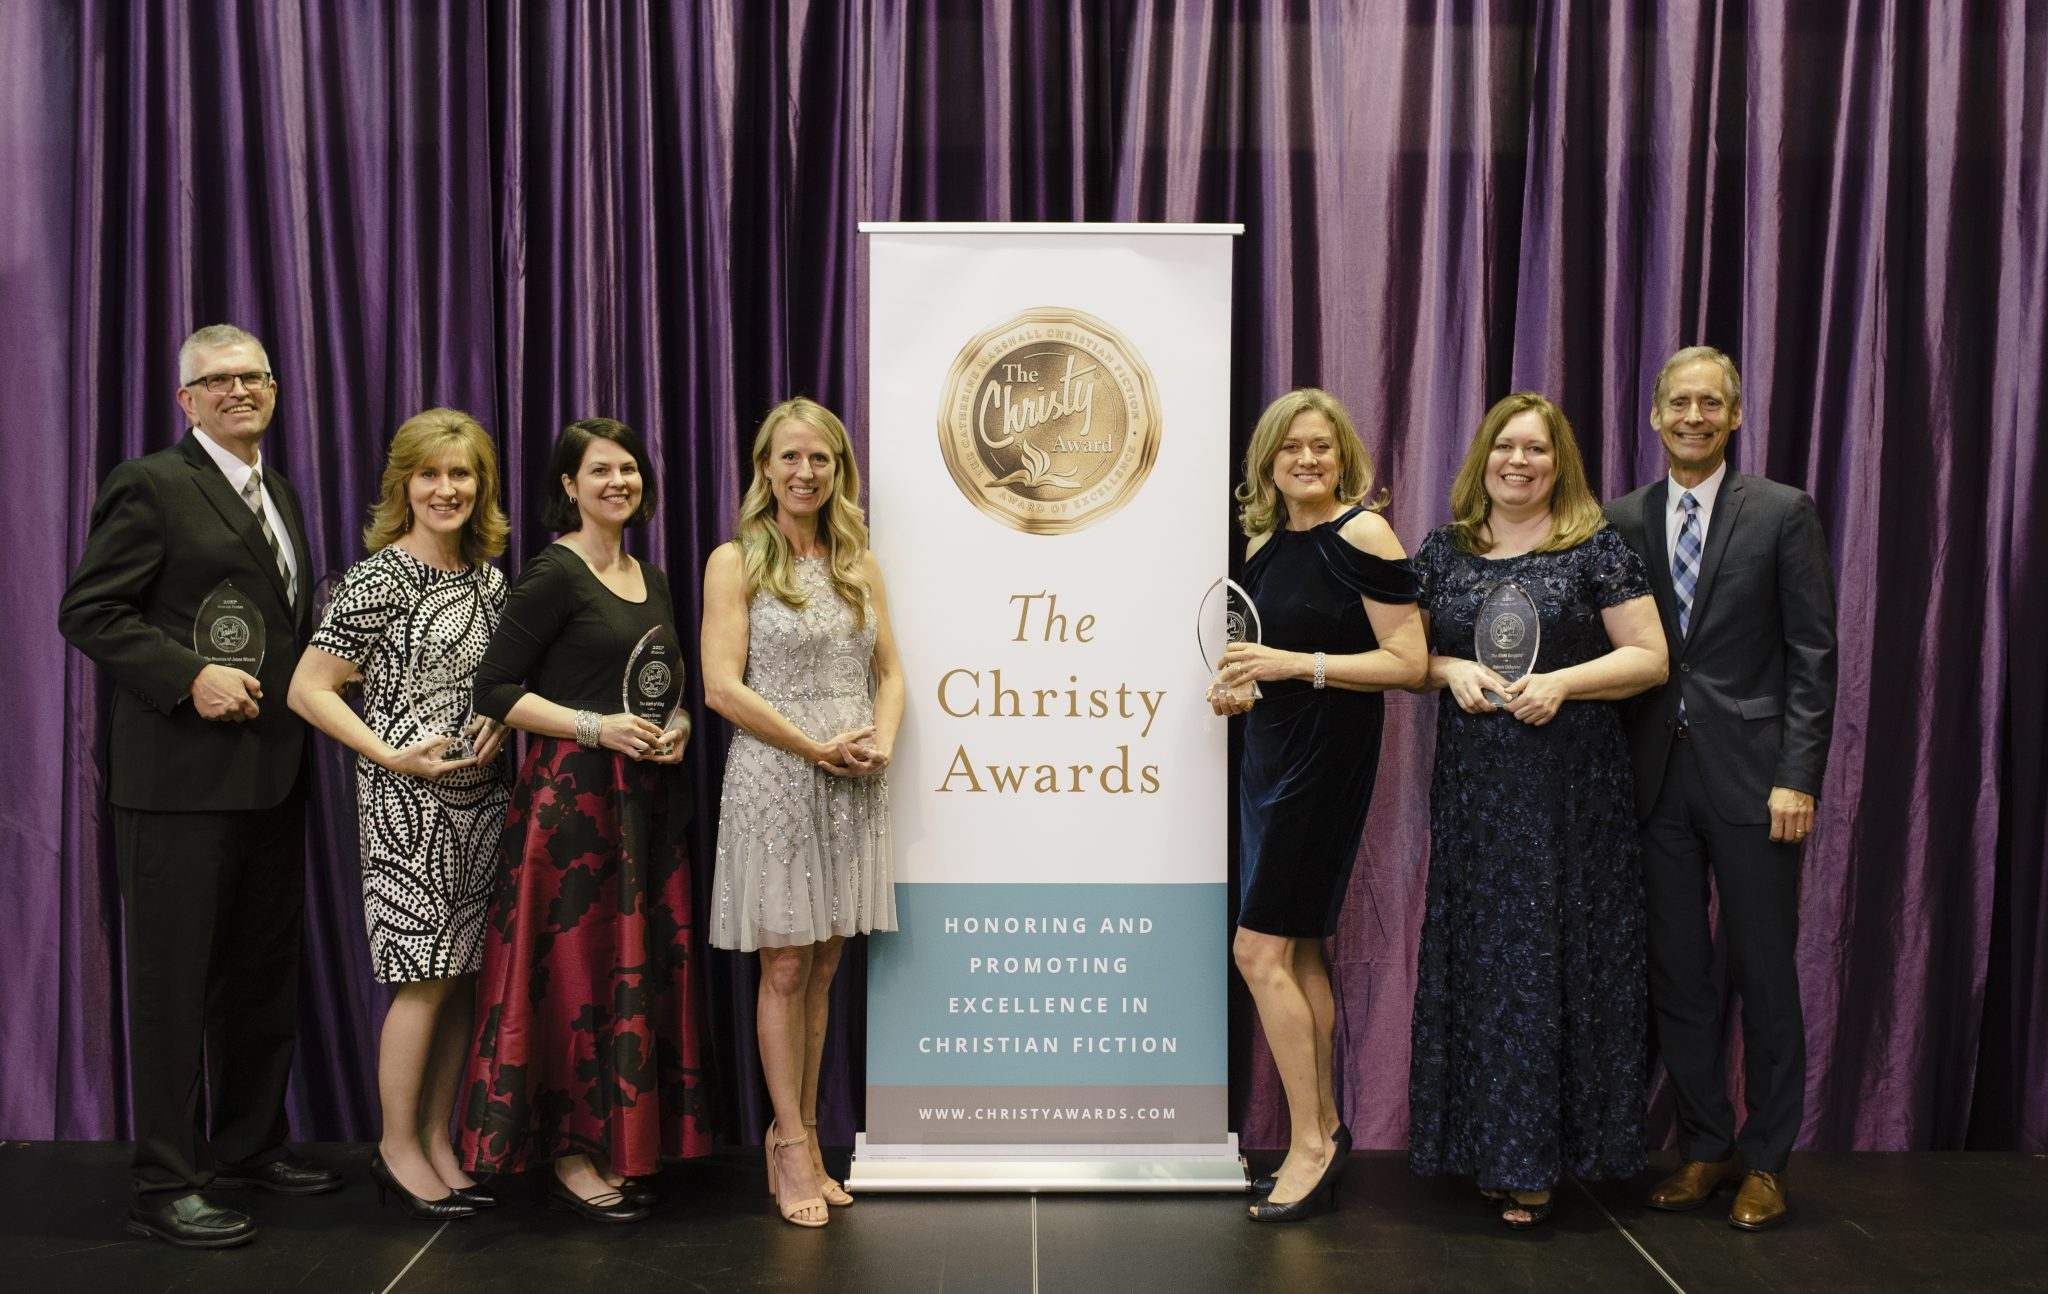 Pictured are the award winning authors present at The Christy Award Gala with ECPA executive director Stan Jantz. (from left to right:) Chris Fabry, Tamera Alexander, Jocelyn Green, Becky Wade, Ann Marie Stewart, Melanie Dickerson, Stan Jantz (photo credit: Kristen Fields)